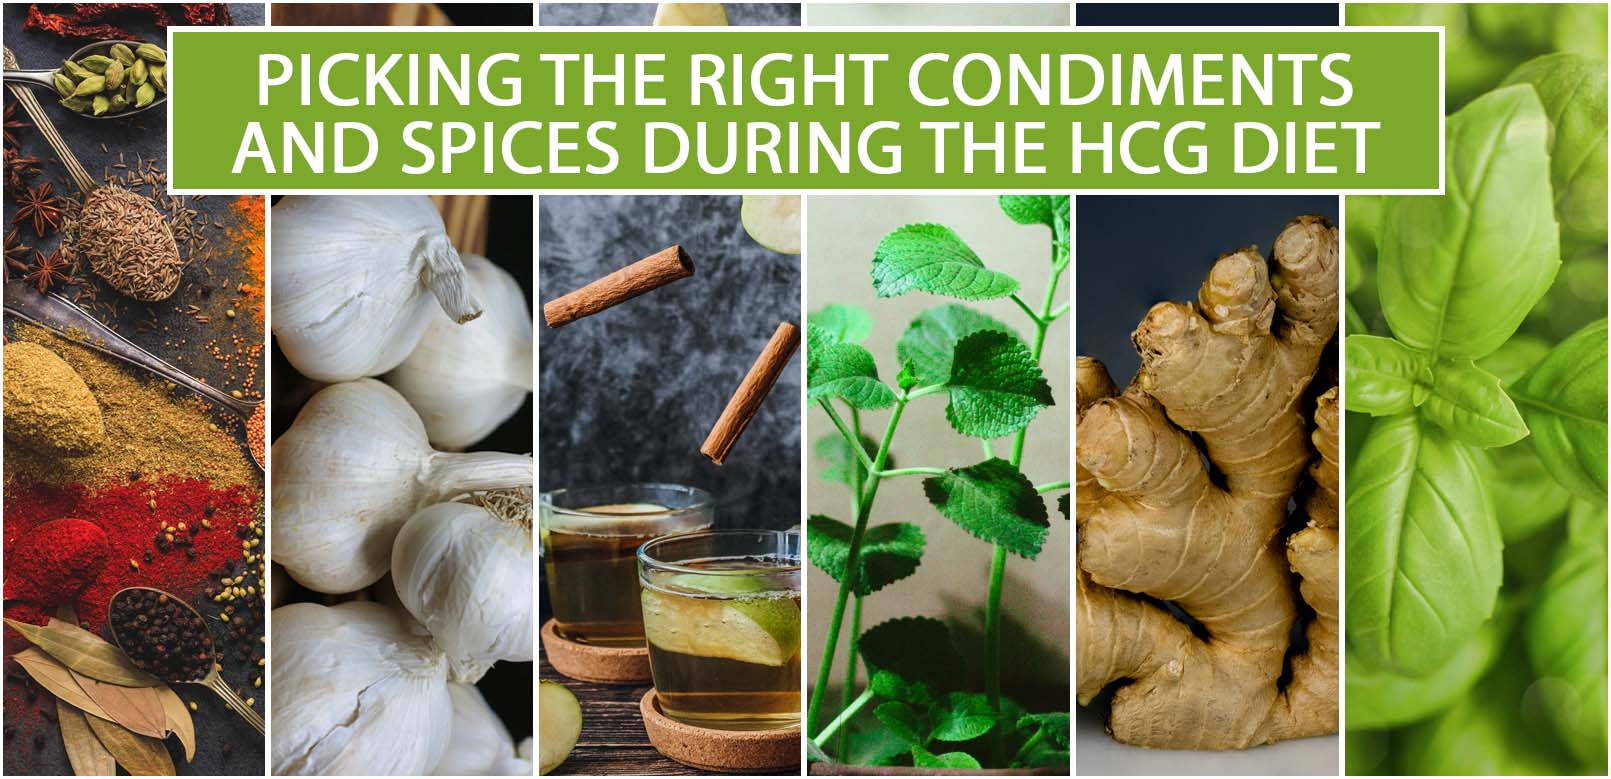 PICKING THE RIGHT CONDIMENTS AND SPICES DURING THE HCG DIET